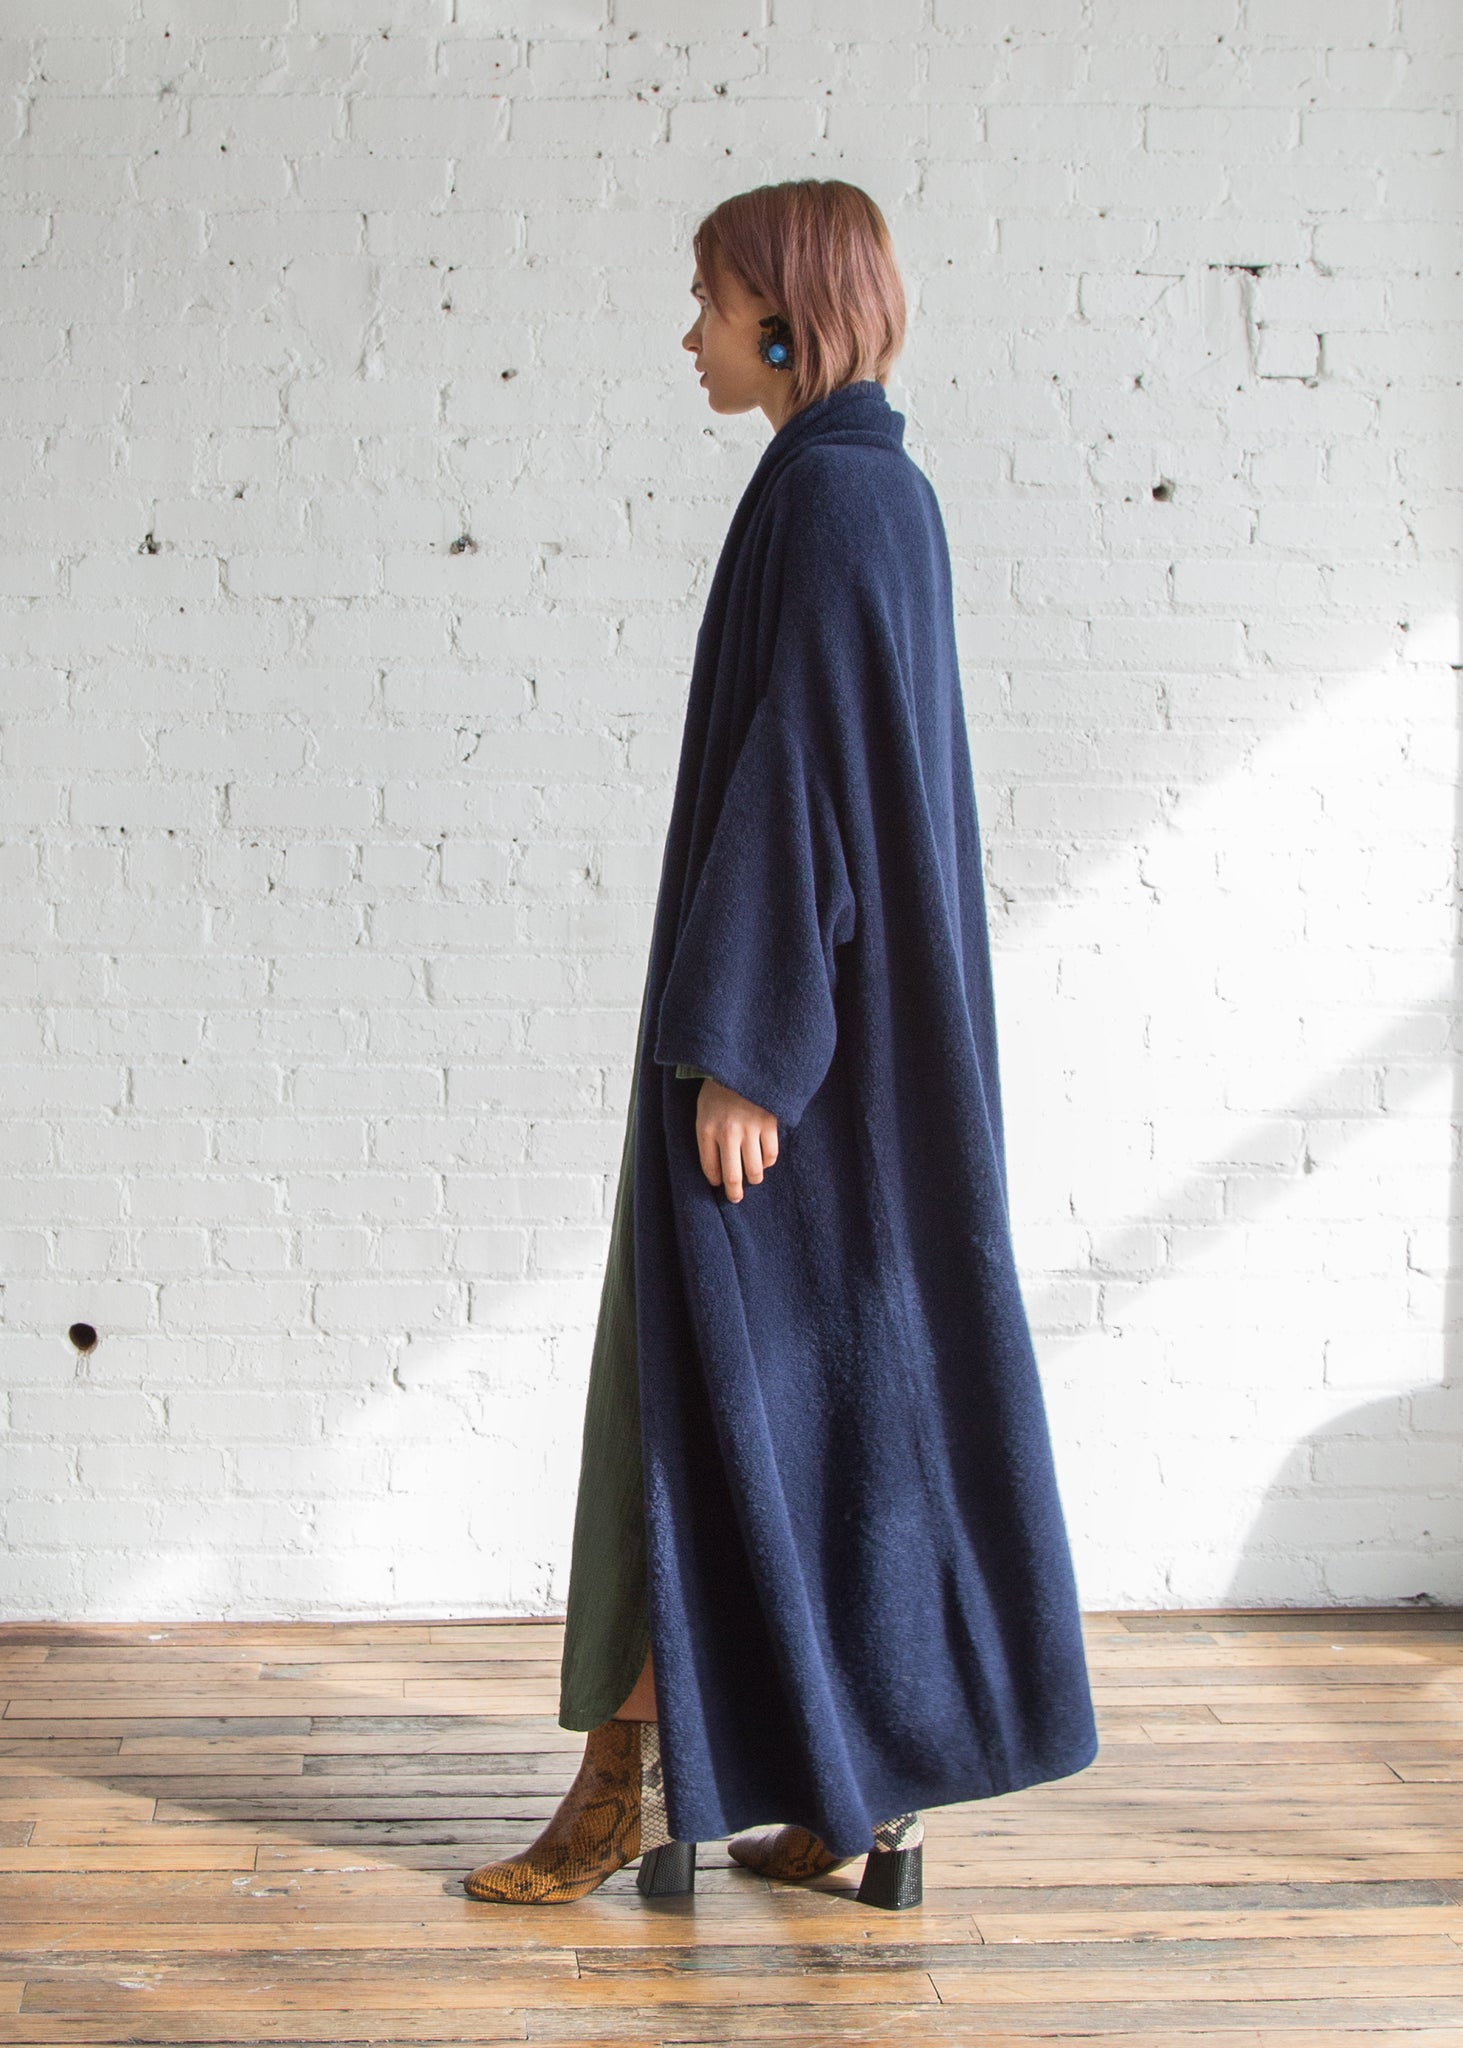 Atelier Delphine Haori Coat Extra Long Navy - SOLD OUT